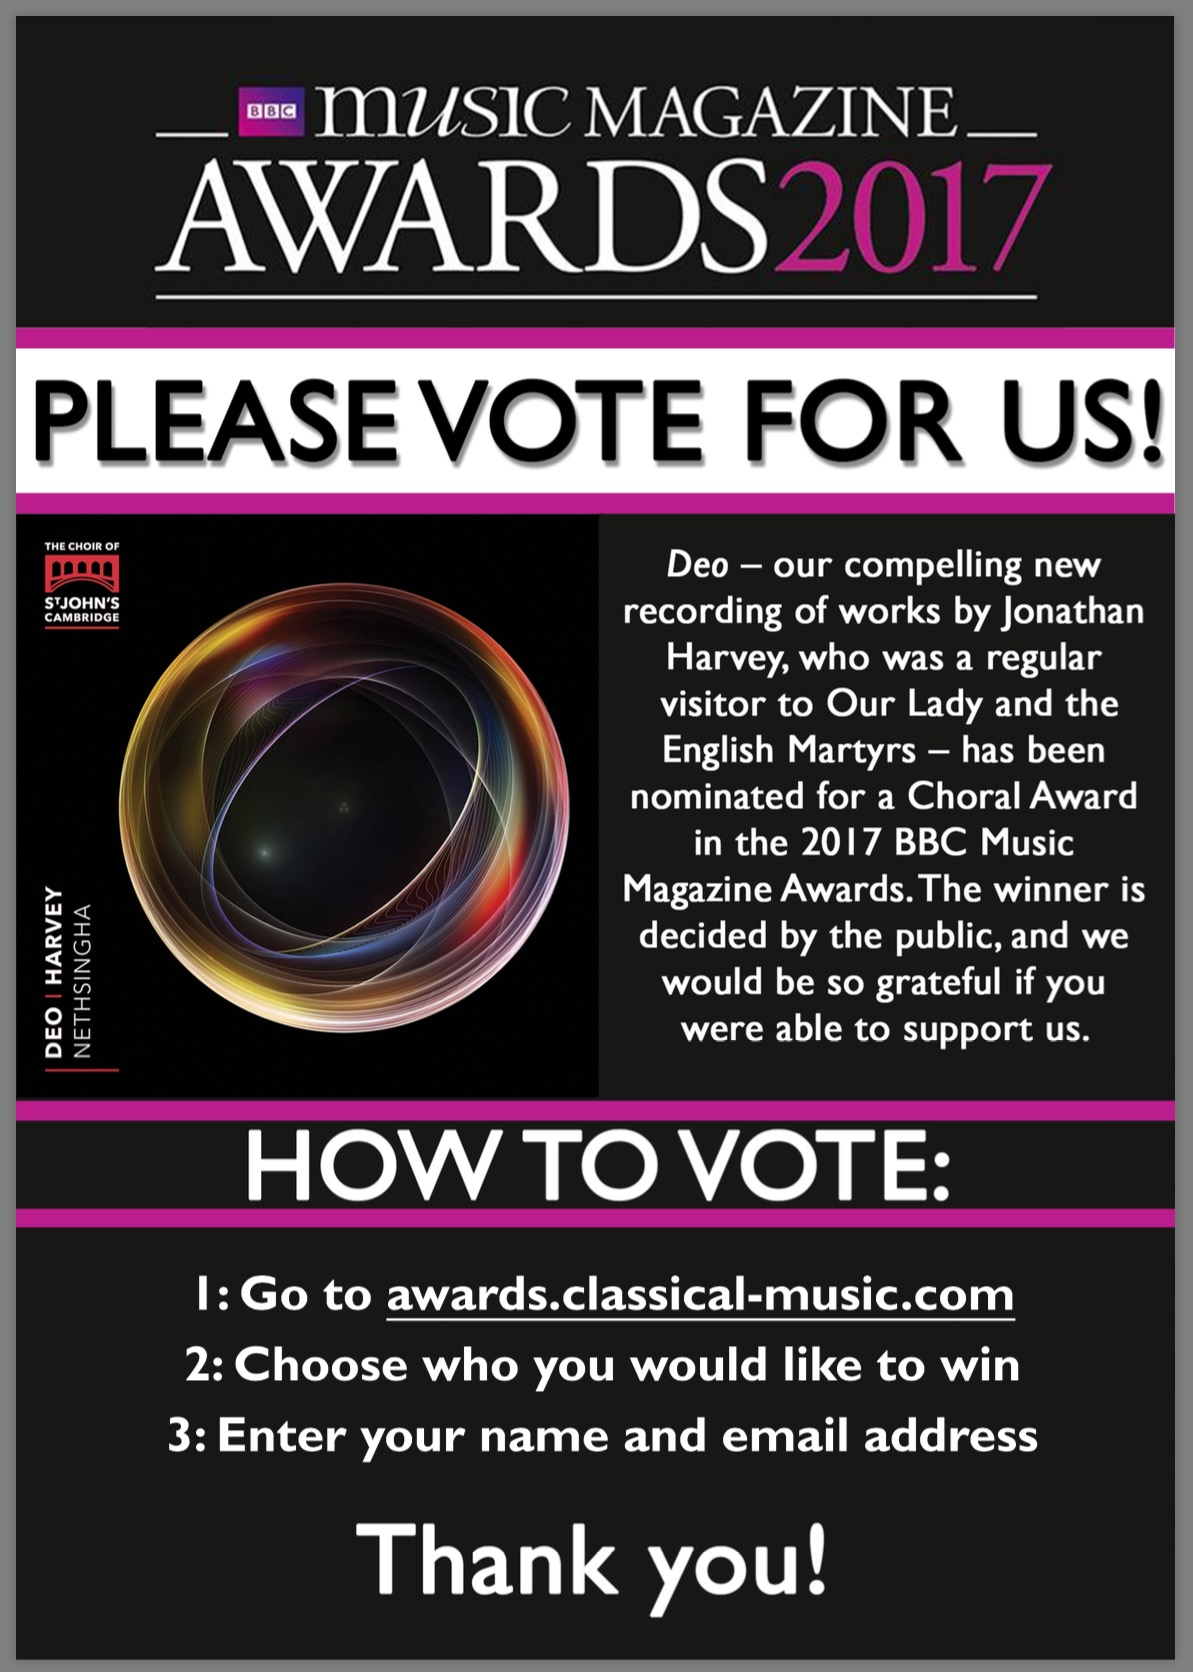 Visit awards.classical-music.com